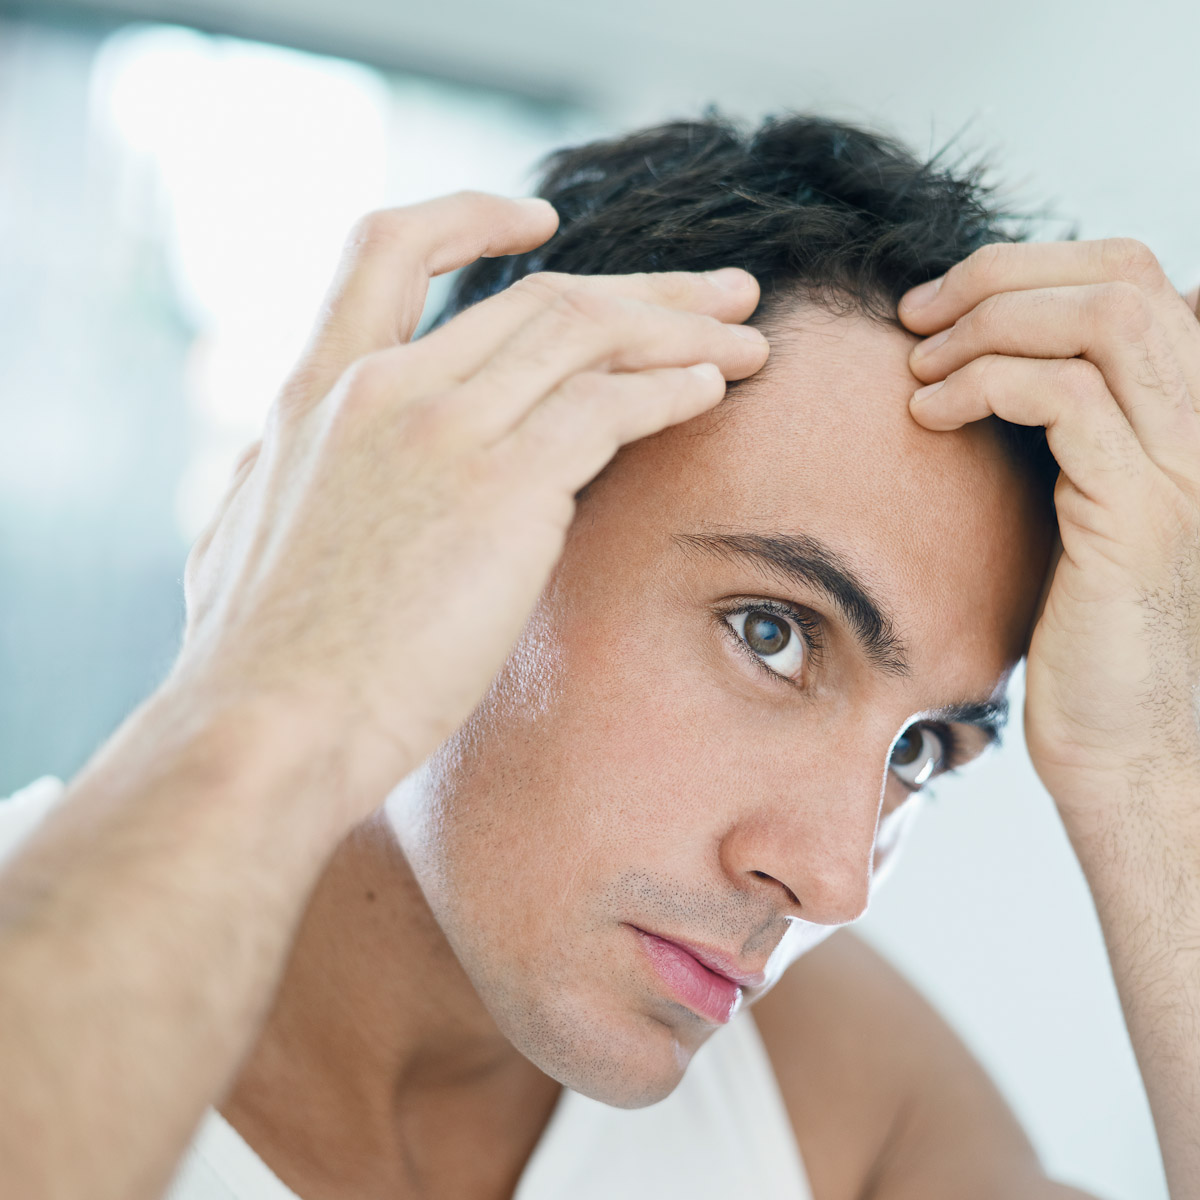 mens-hair-receding-hairline-male-pattern-baldness-man-for-himself